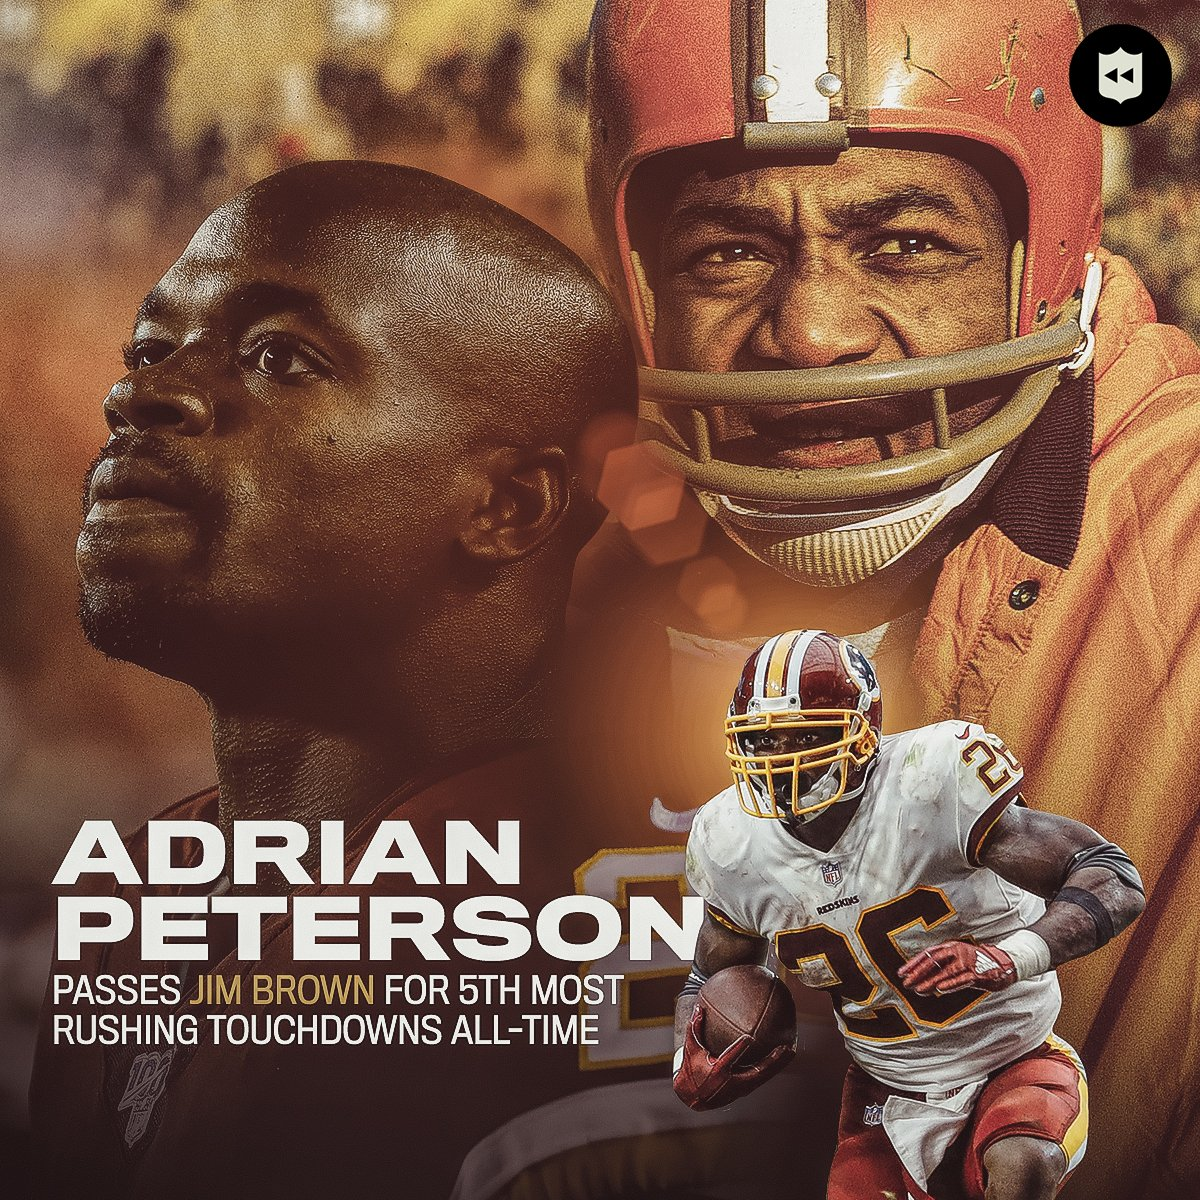 ALL DAY.@AdrianPeterson moves ahead of @JimBrownNFL32 in career rushing TDs. @Redskins